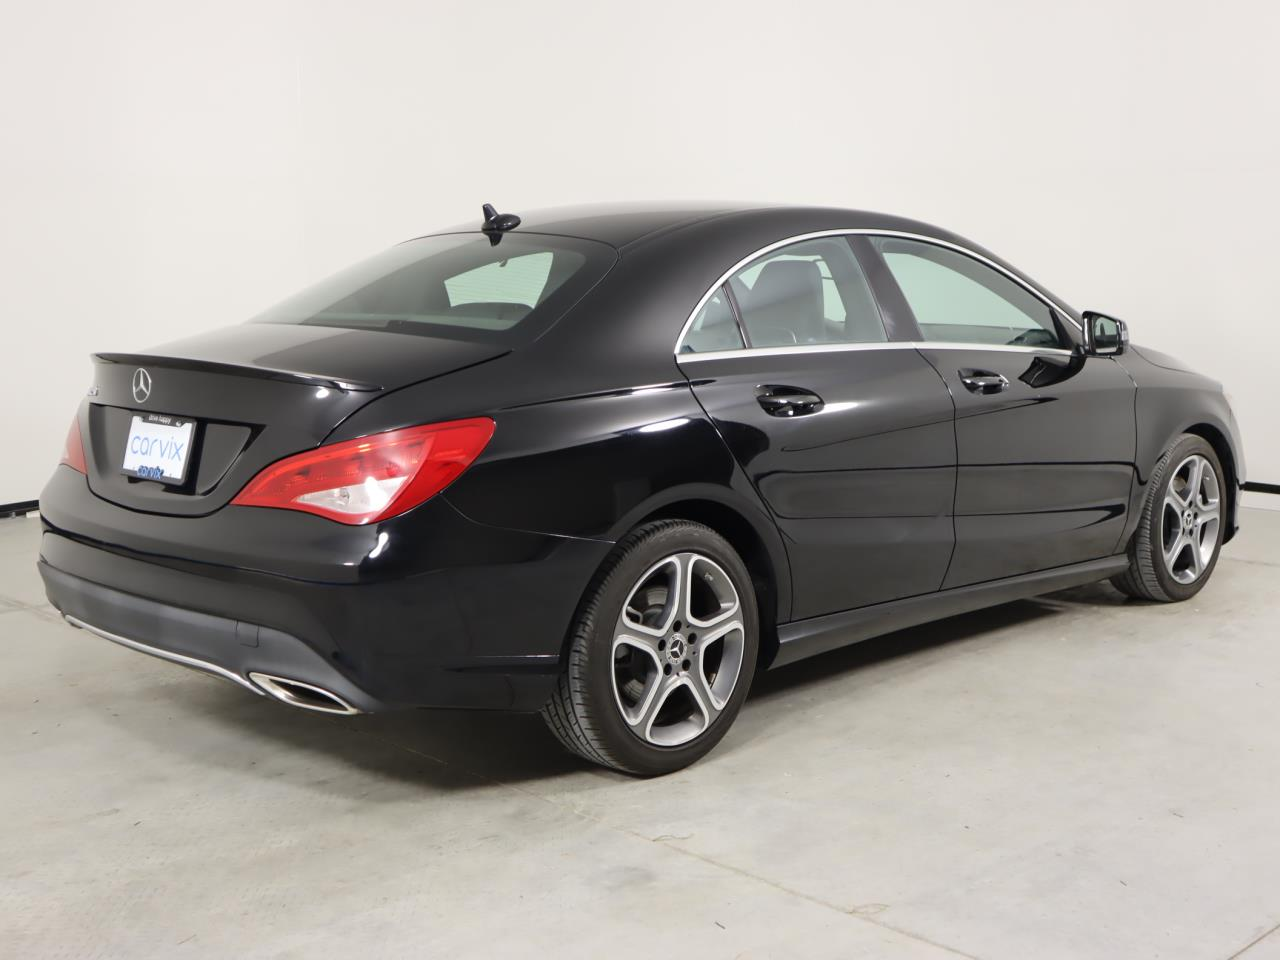 used vehicle - Sedan MERCEDES-BENZ CLA 2018